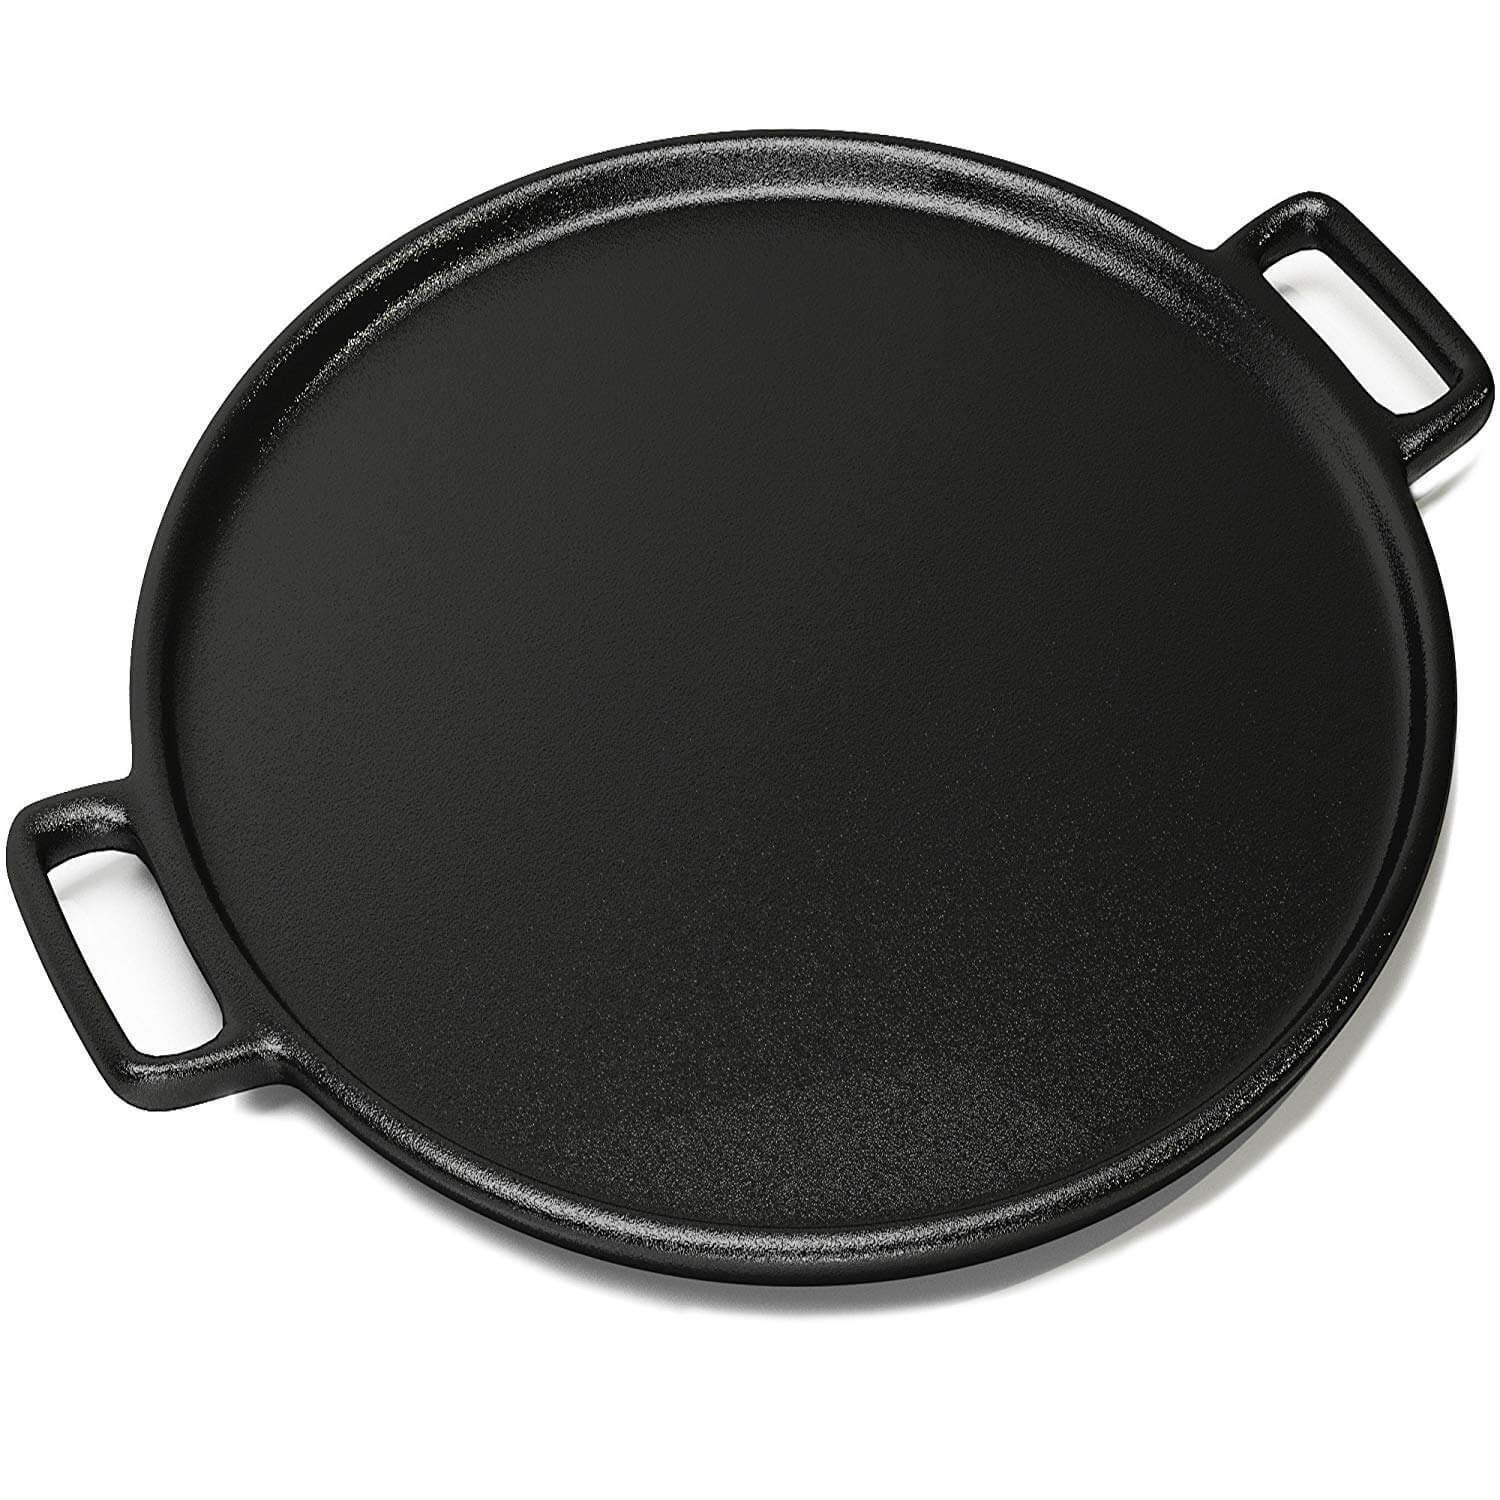 Home-Complete Cast Iron Pizza Pan Skillet